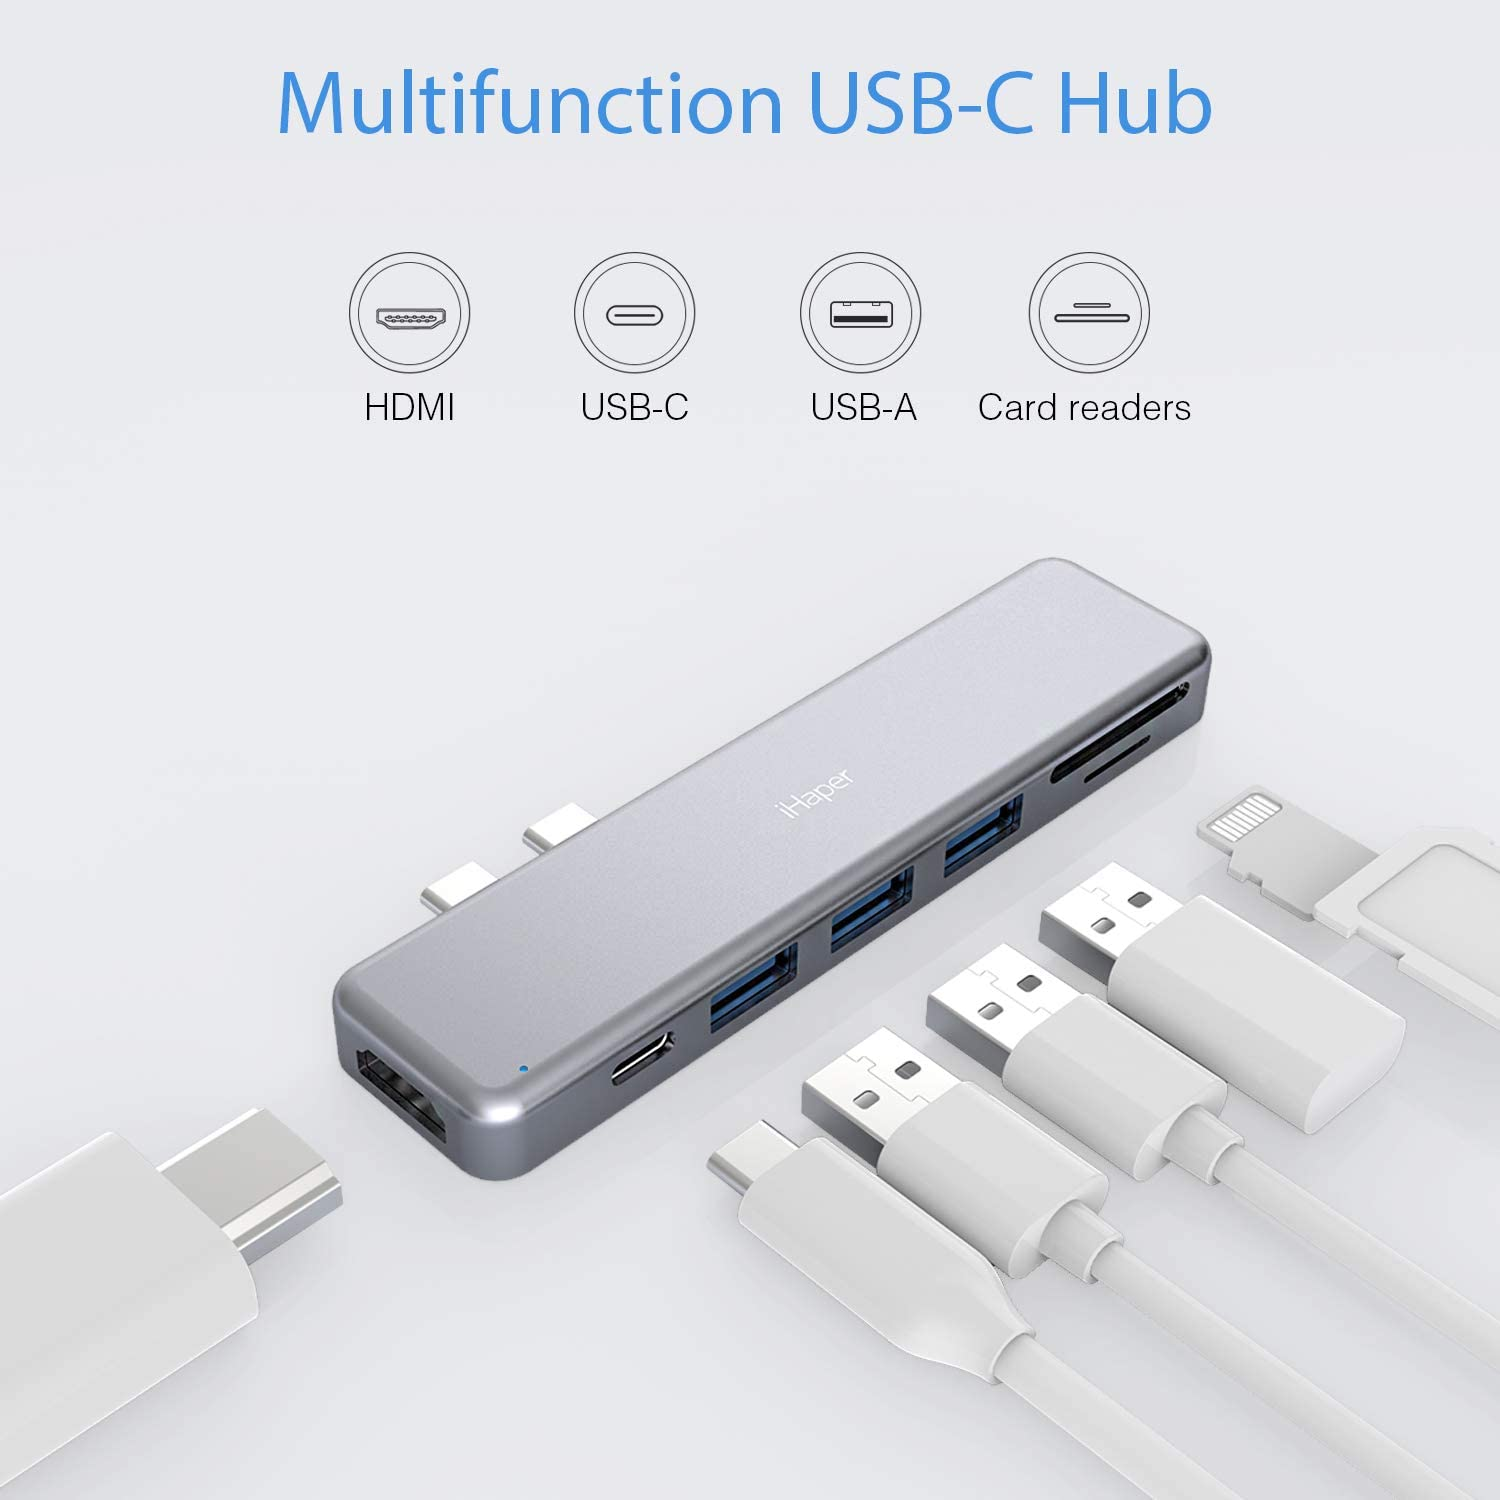 for MacBook Pro 2018//2017//2016 SD//TF Card Reader 100W PD iHaper C001 USB C Hub MacBook Air 2018 3 USB 3.0 7-in-2 Duo Type-C Thunderbolt 3 Adapter with 4K USB C to HDMI